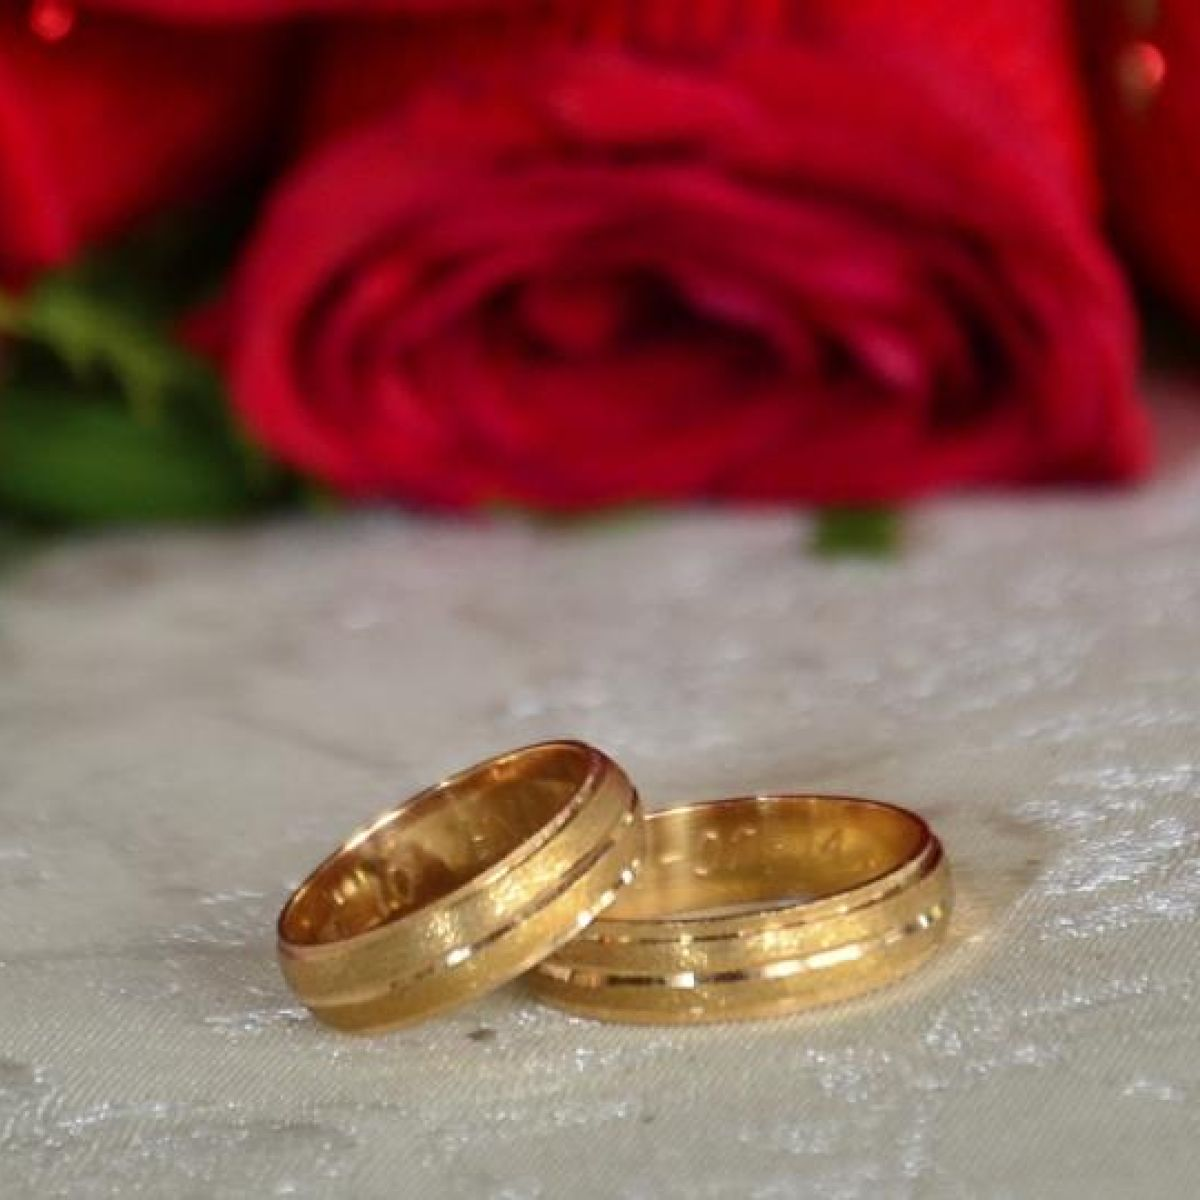 Catholic Church teaching on marriage has changed down the centuries